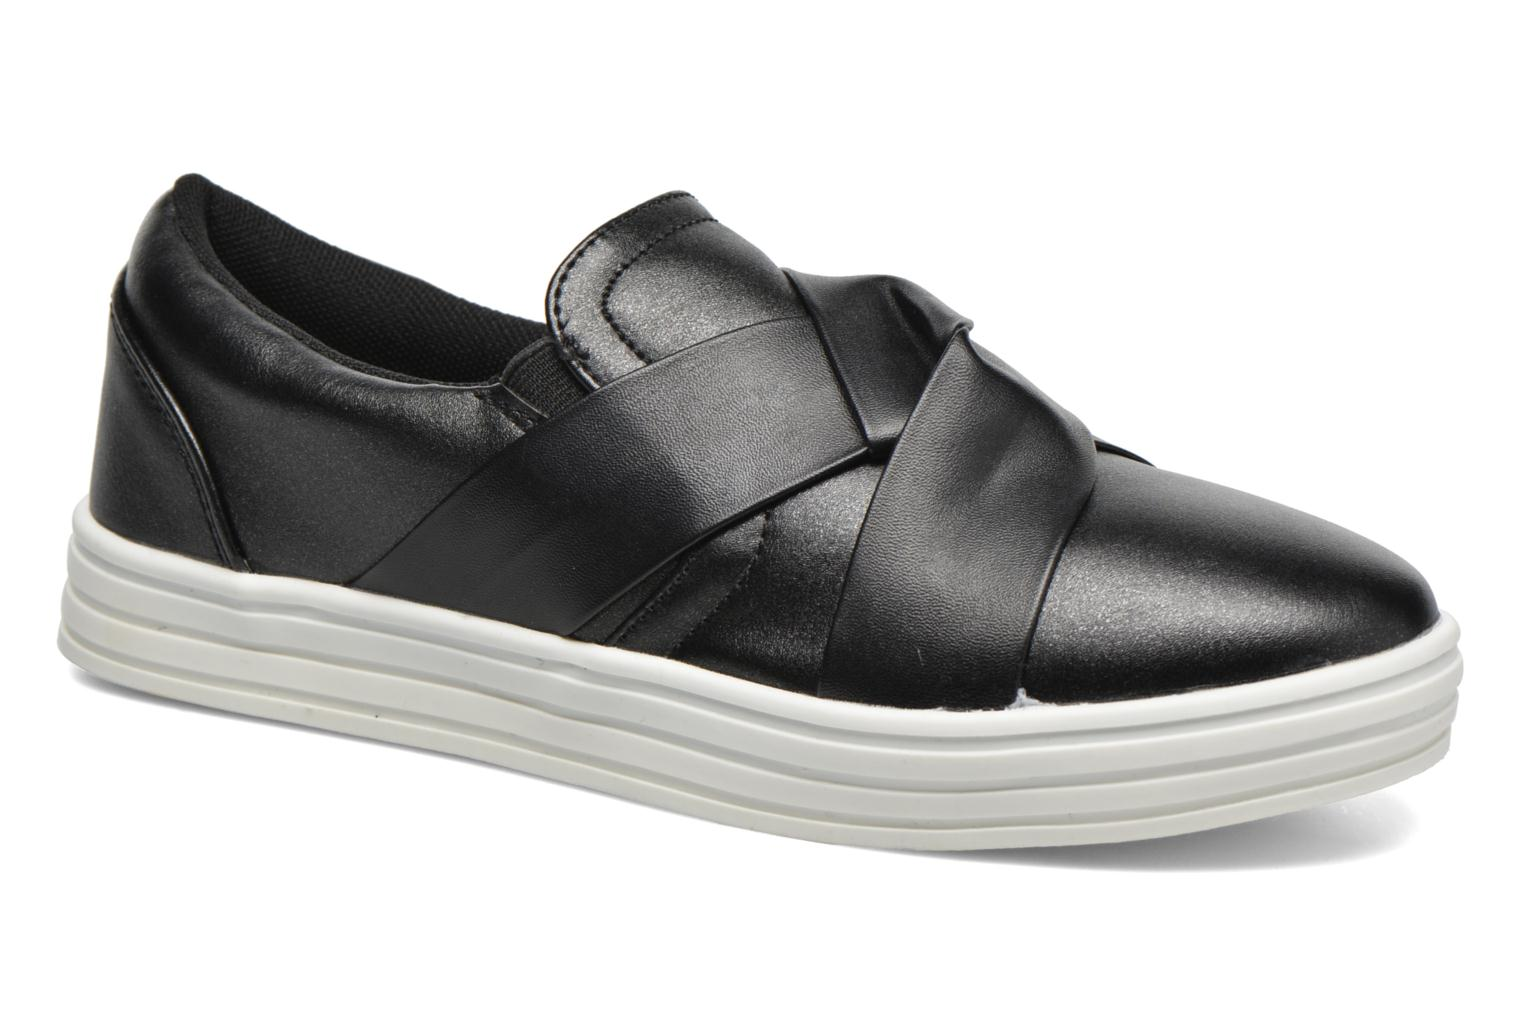 Marques Chaussure femme I Love Shoes femme THEN black met